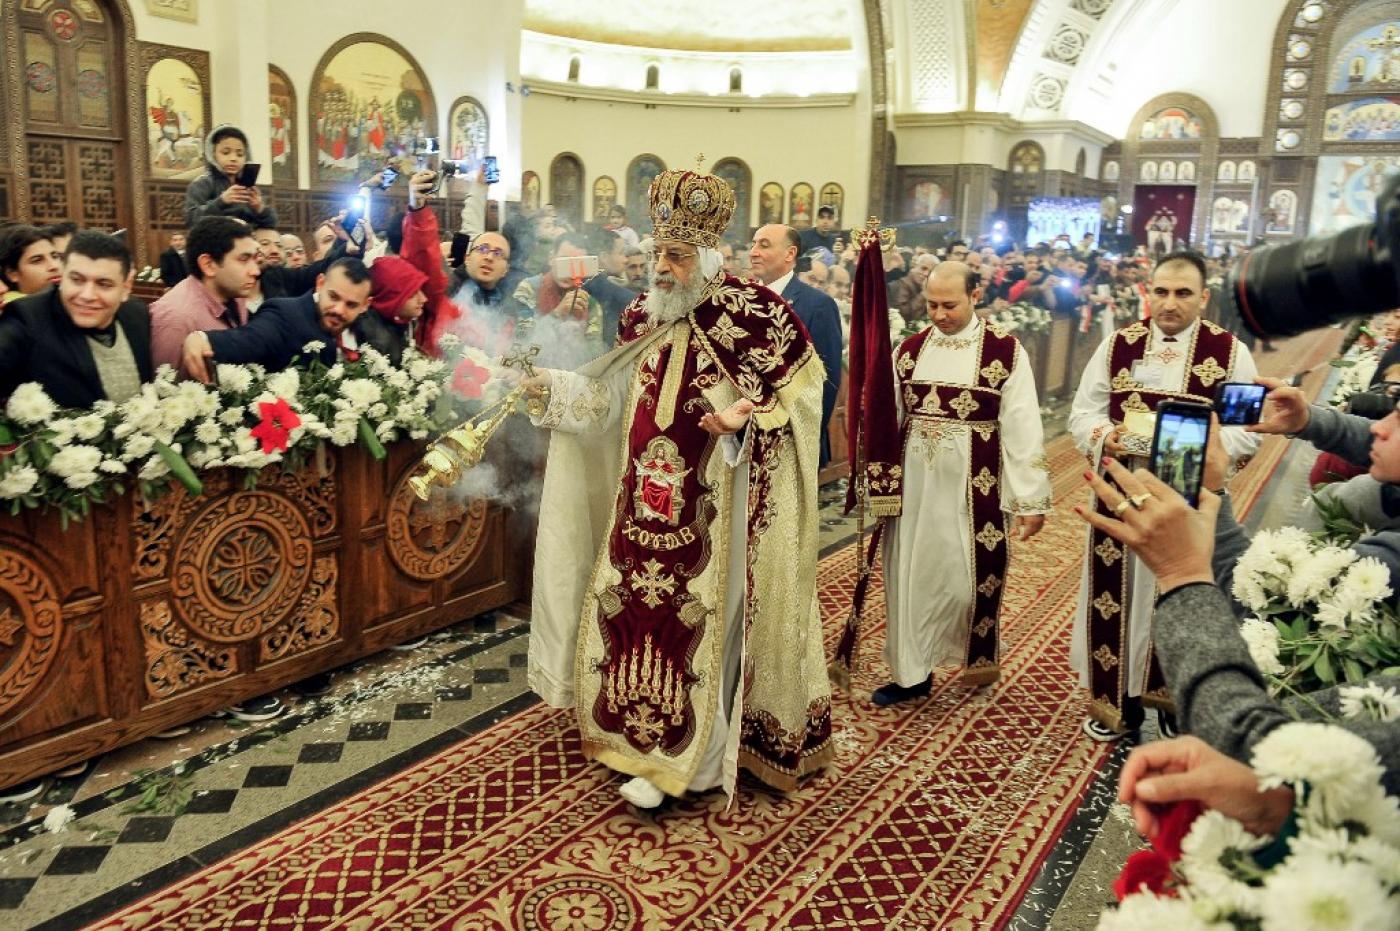 Coptic Othodox Christmas Fast 2020 What's different about Coptic Christmas? | Middle East Eye